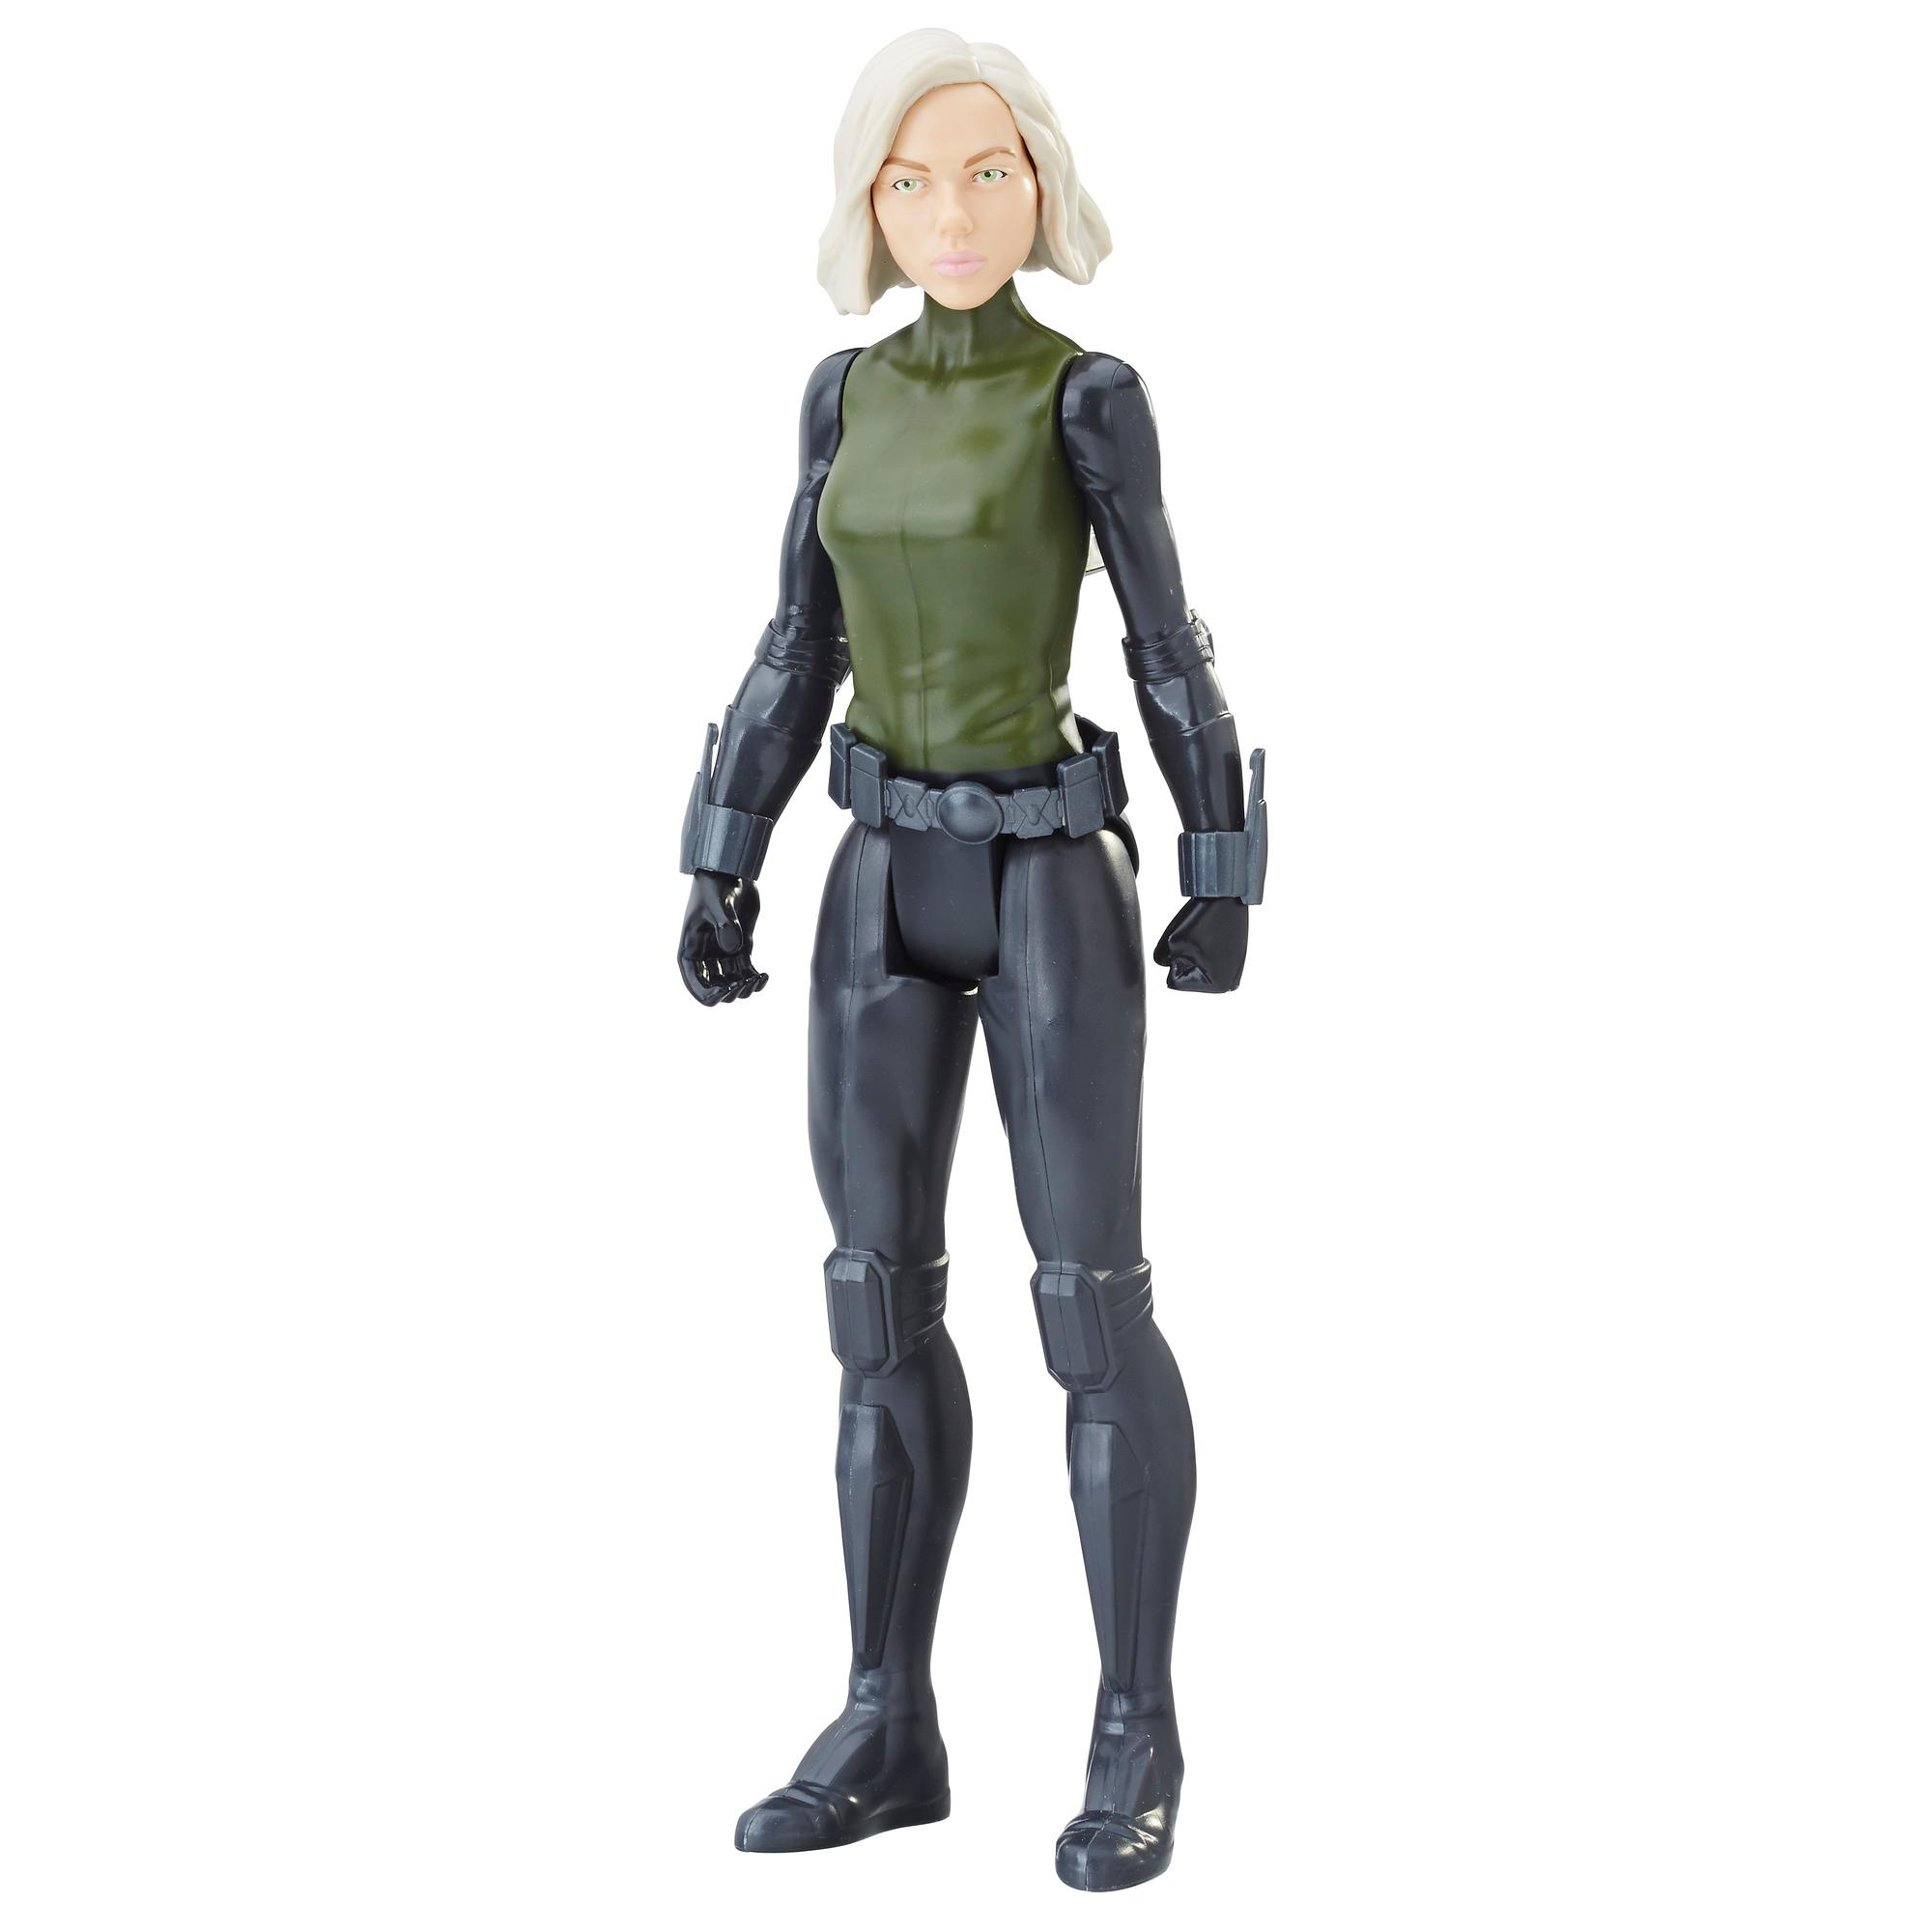 Marvel Infinity War Titan Hero Series - Black Widow con puerto para Titan Hero Power FX